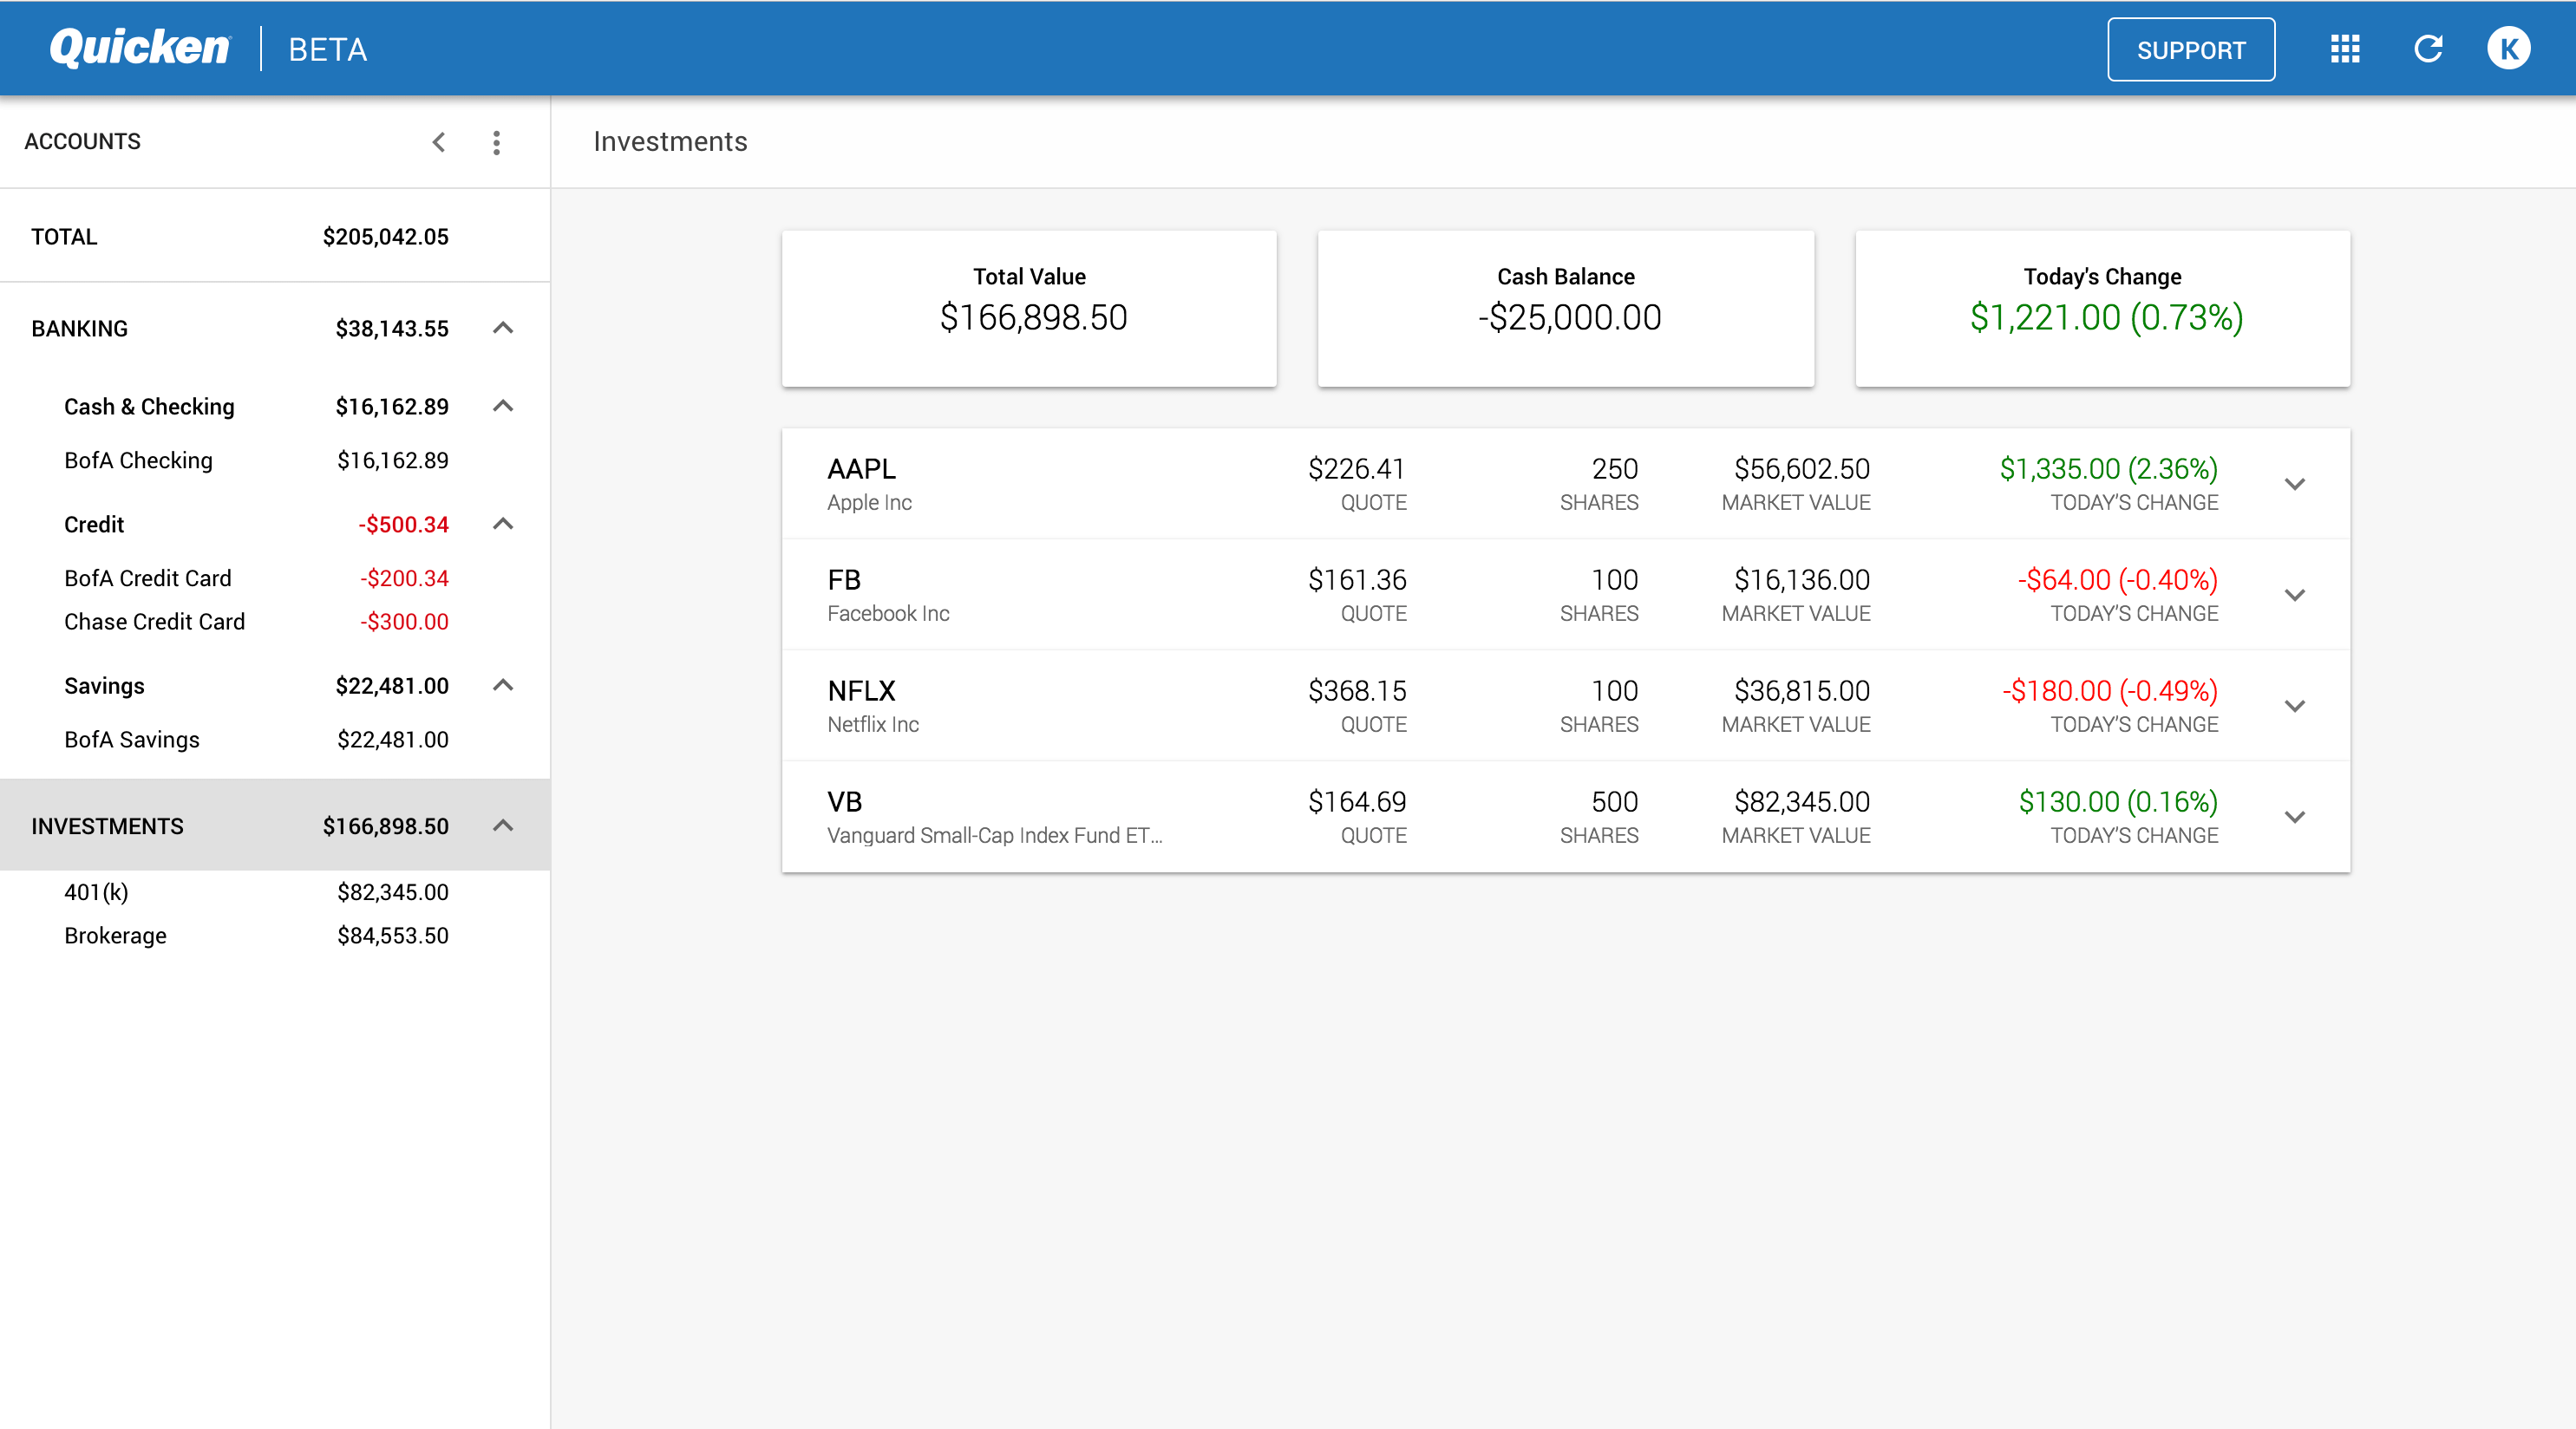 Quicken screenshot of investments